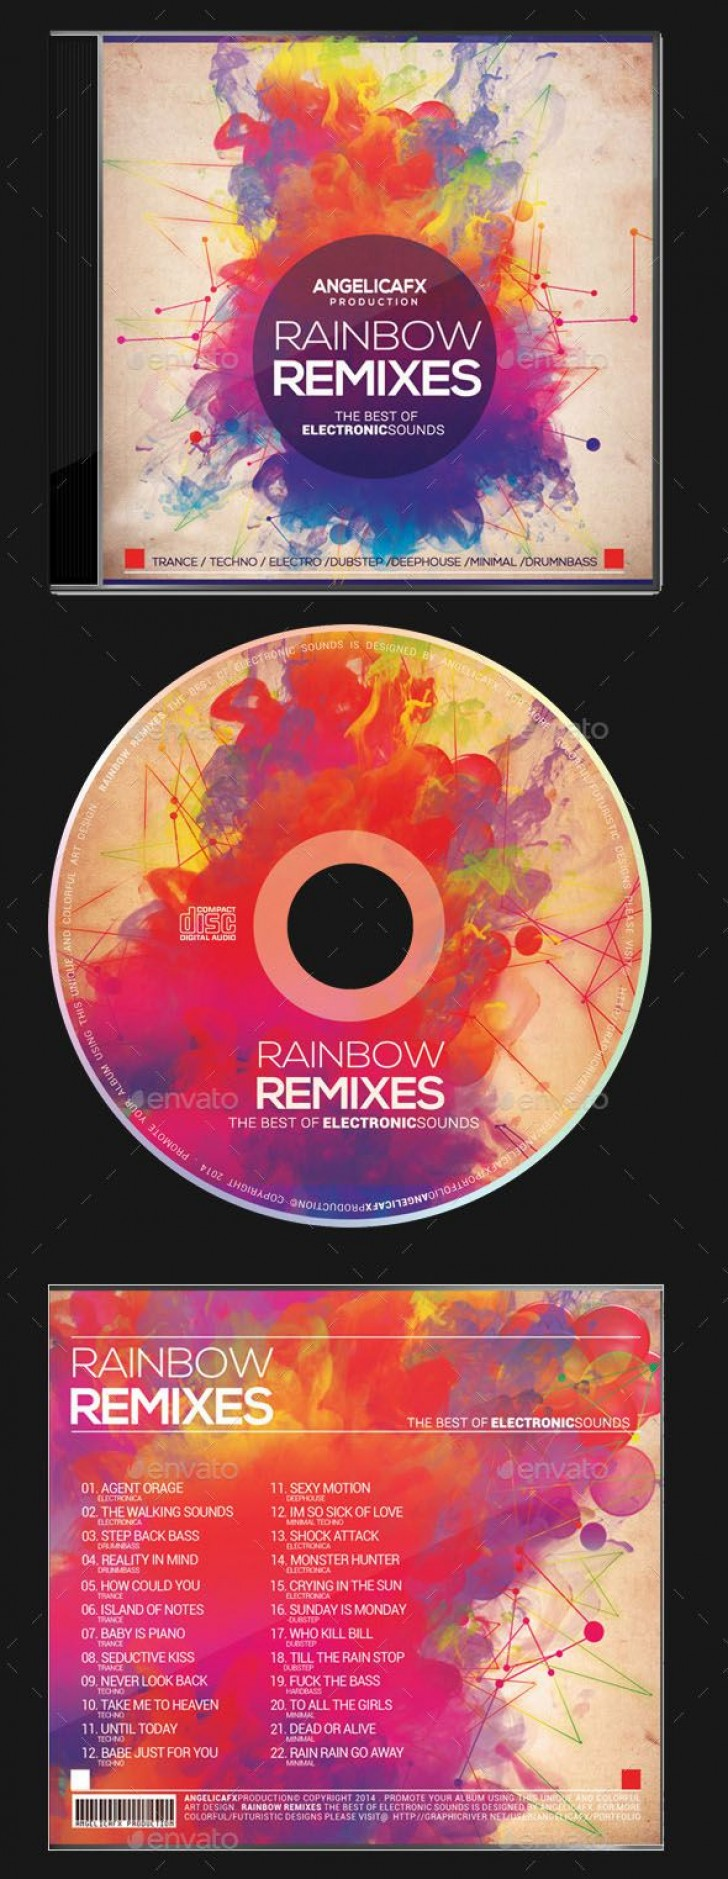 002 Unforgettable Free Cd Cover Design Template Photoshop Inspiration  Label Psd Download728